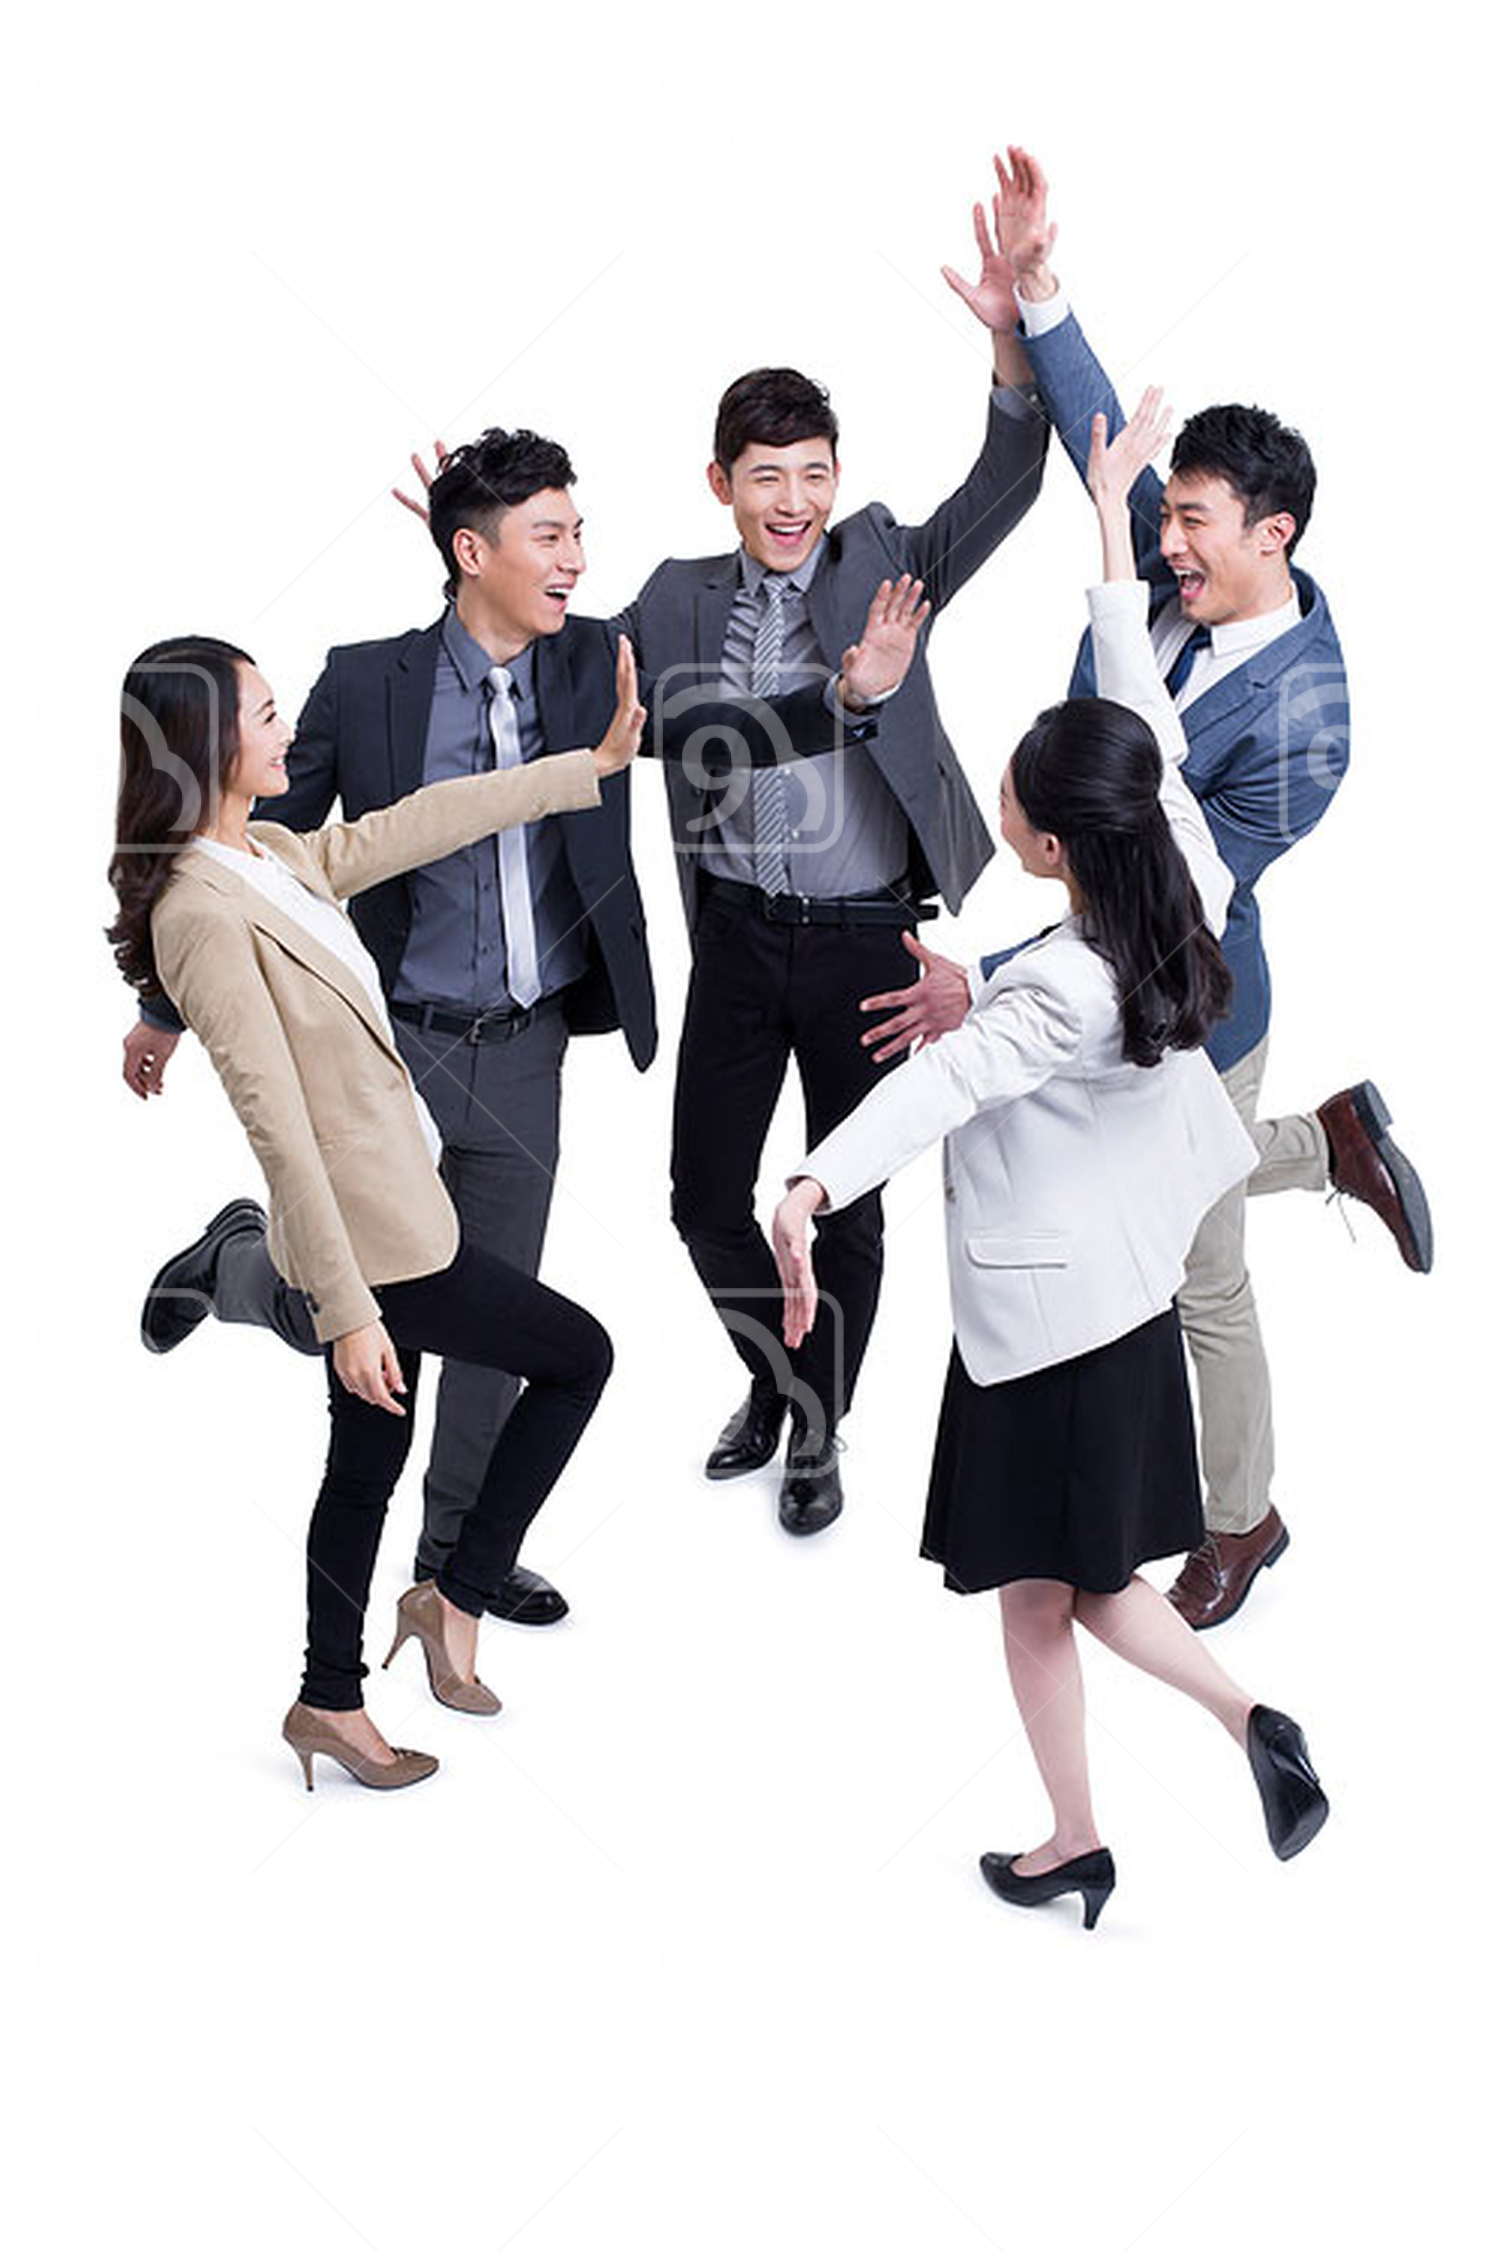 Excited Chinese business coworkers celebrating